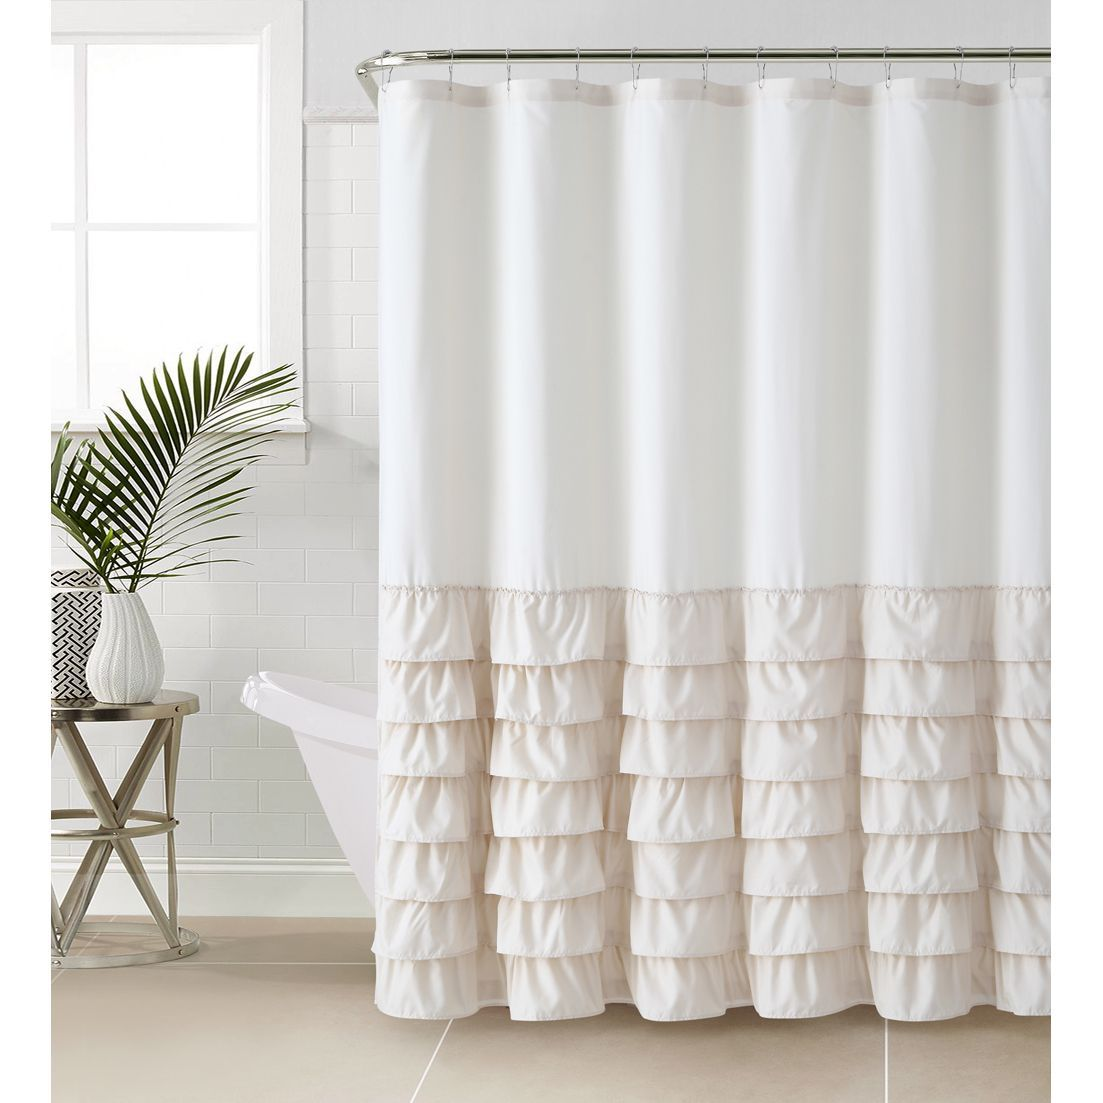 Vcny Melanie Ruffle Shower Curtain Taupe Brown Ruffle Shower